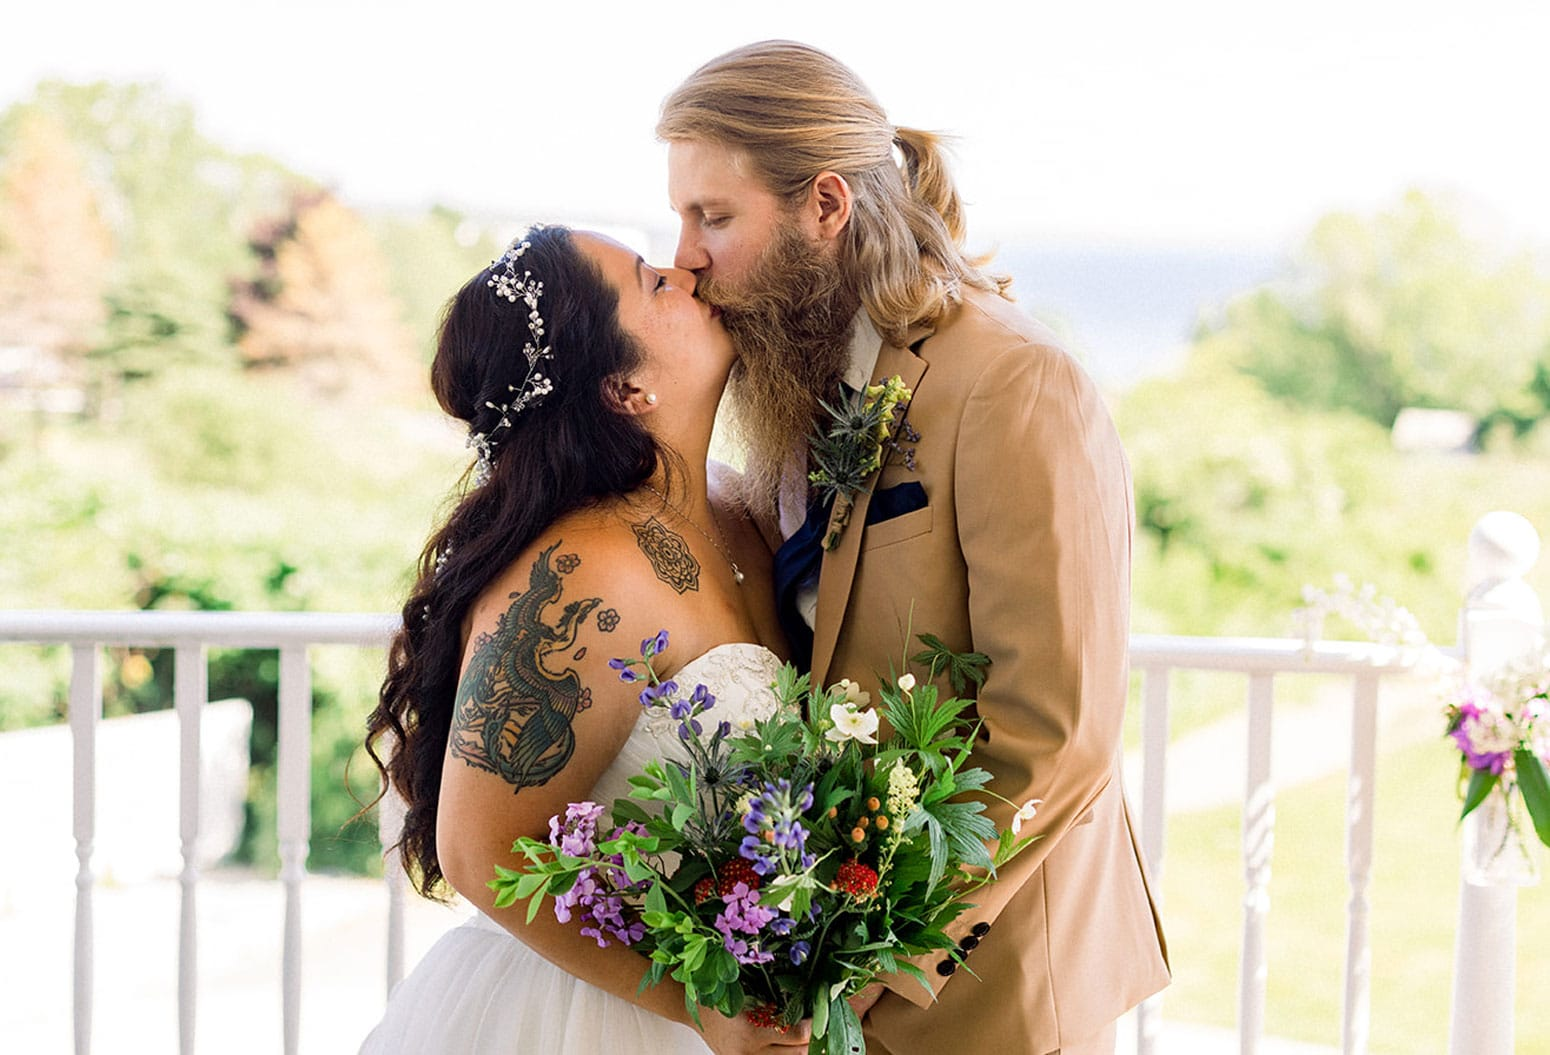 Newlywed Couple share their first kiss at conclusion of ceremony